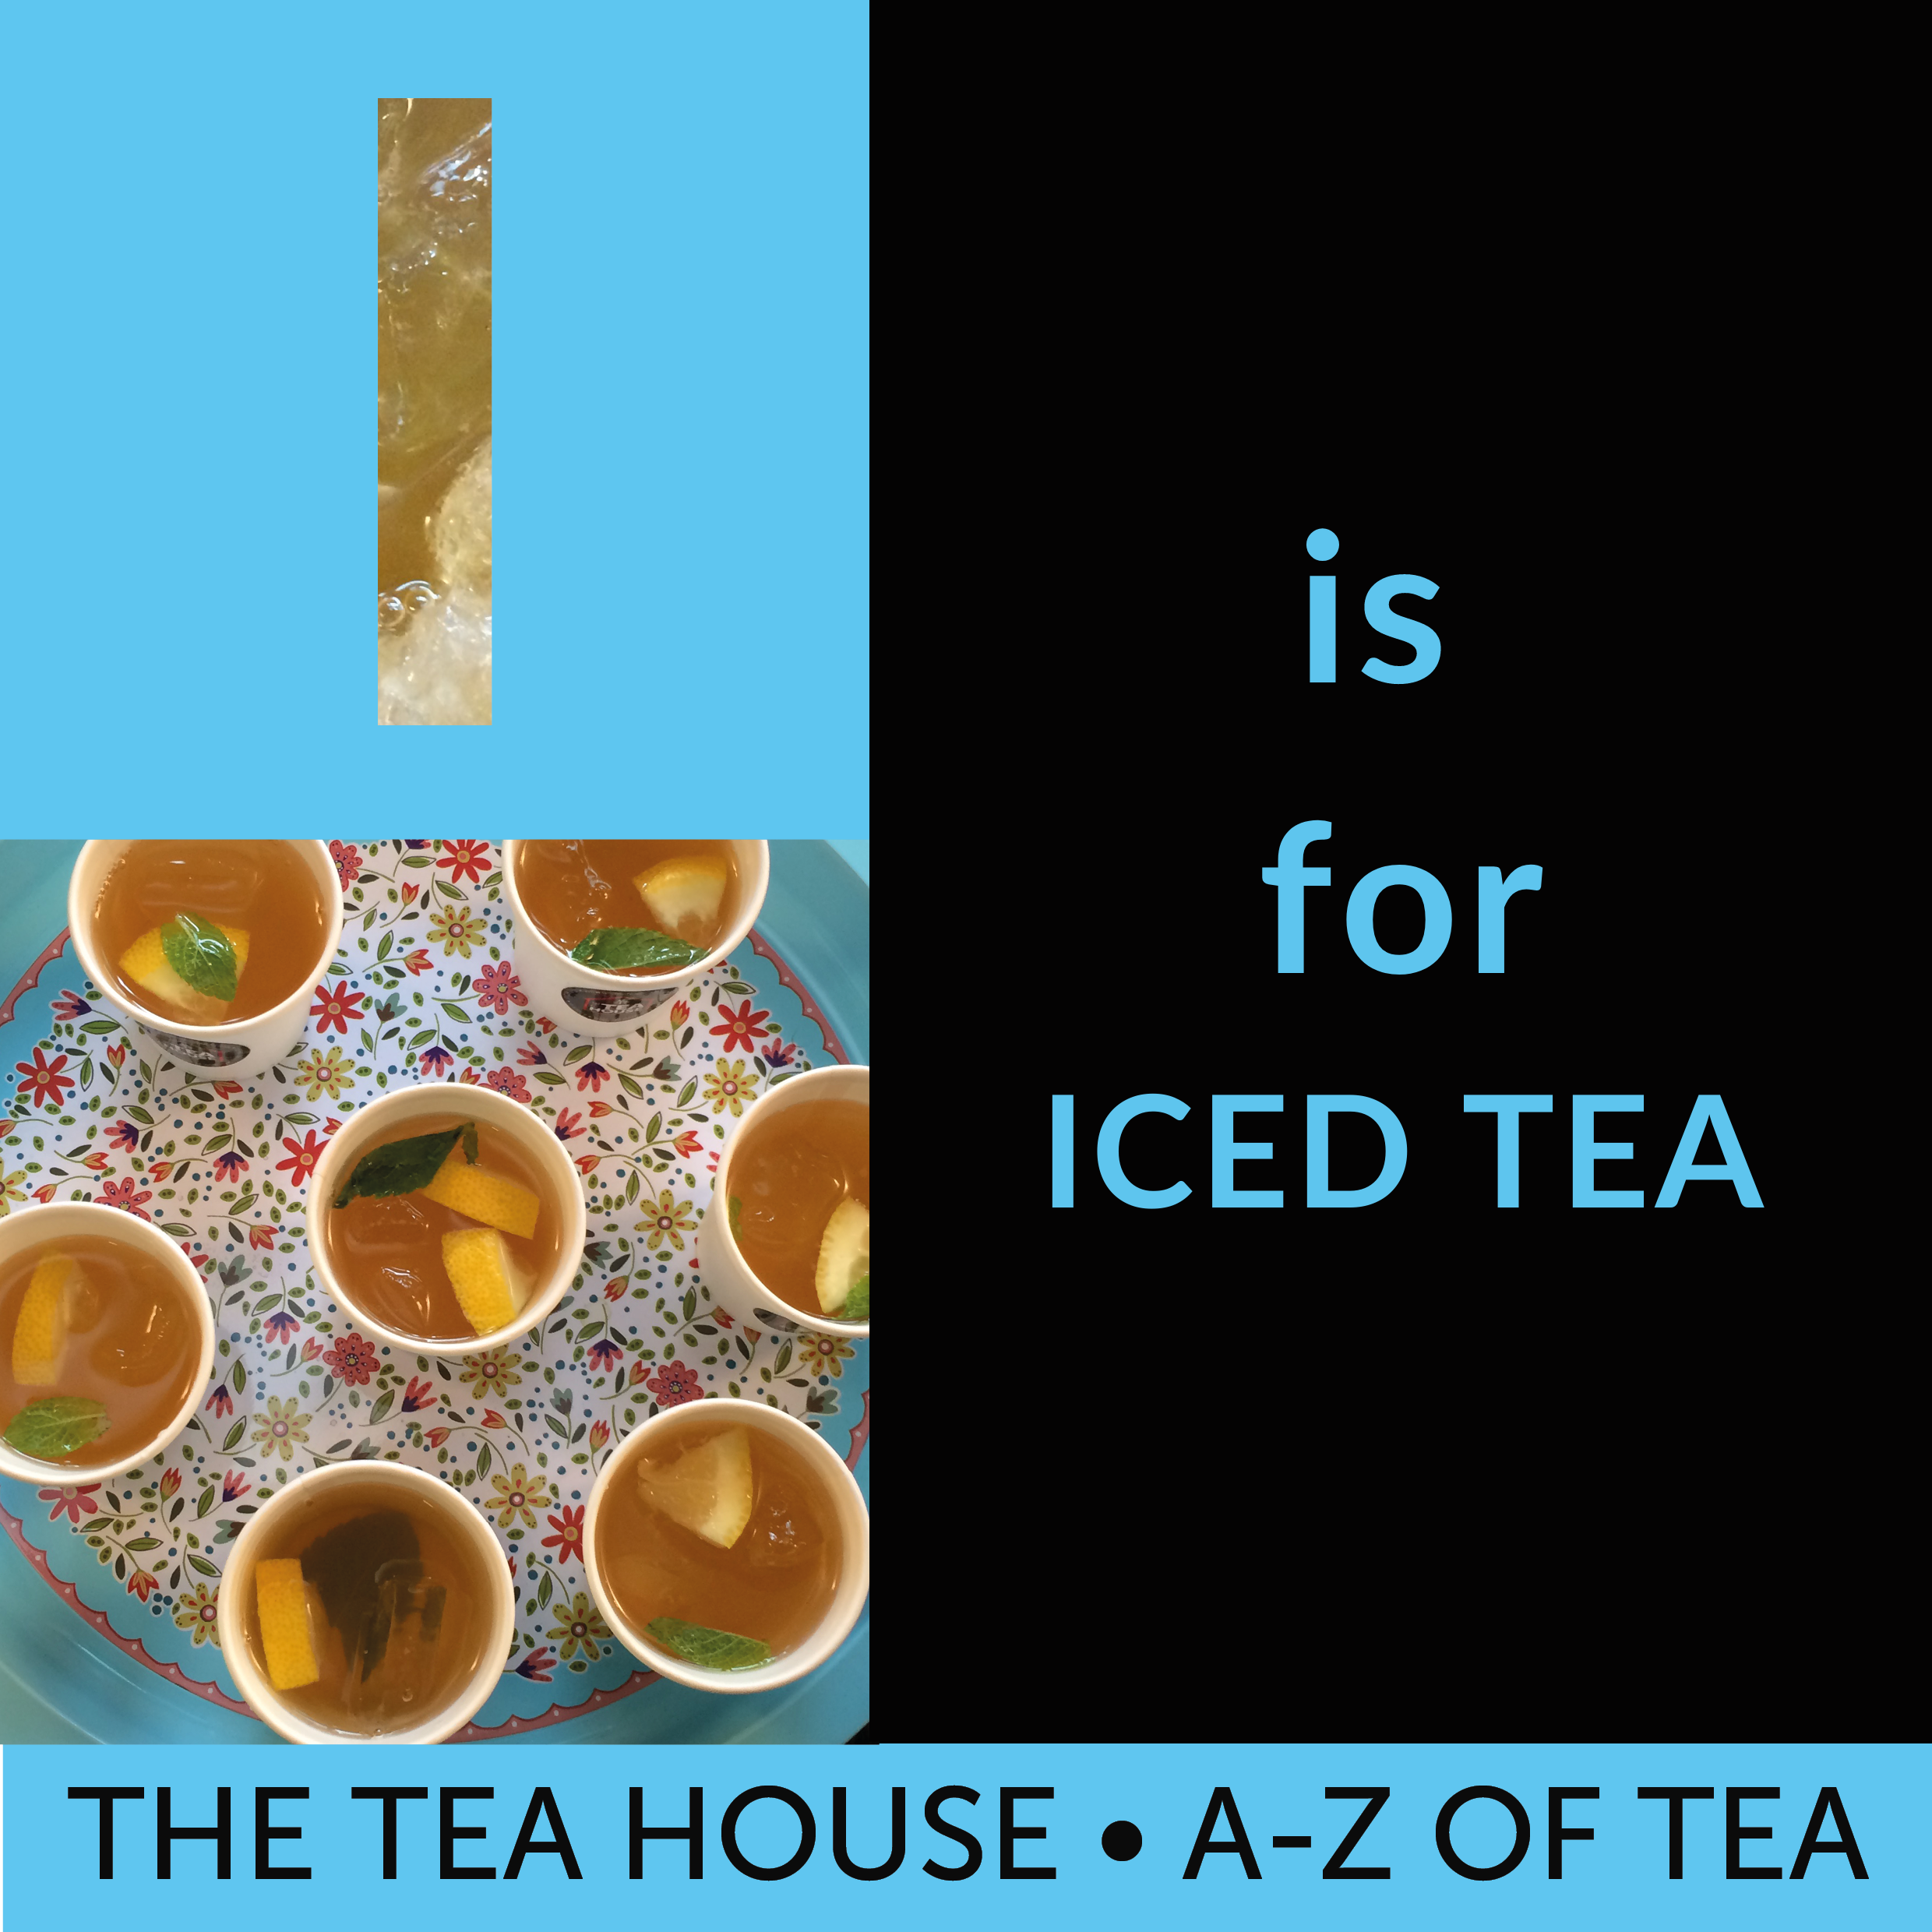 I is for Iced Tea